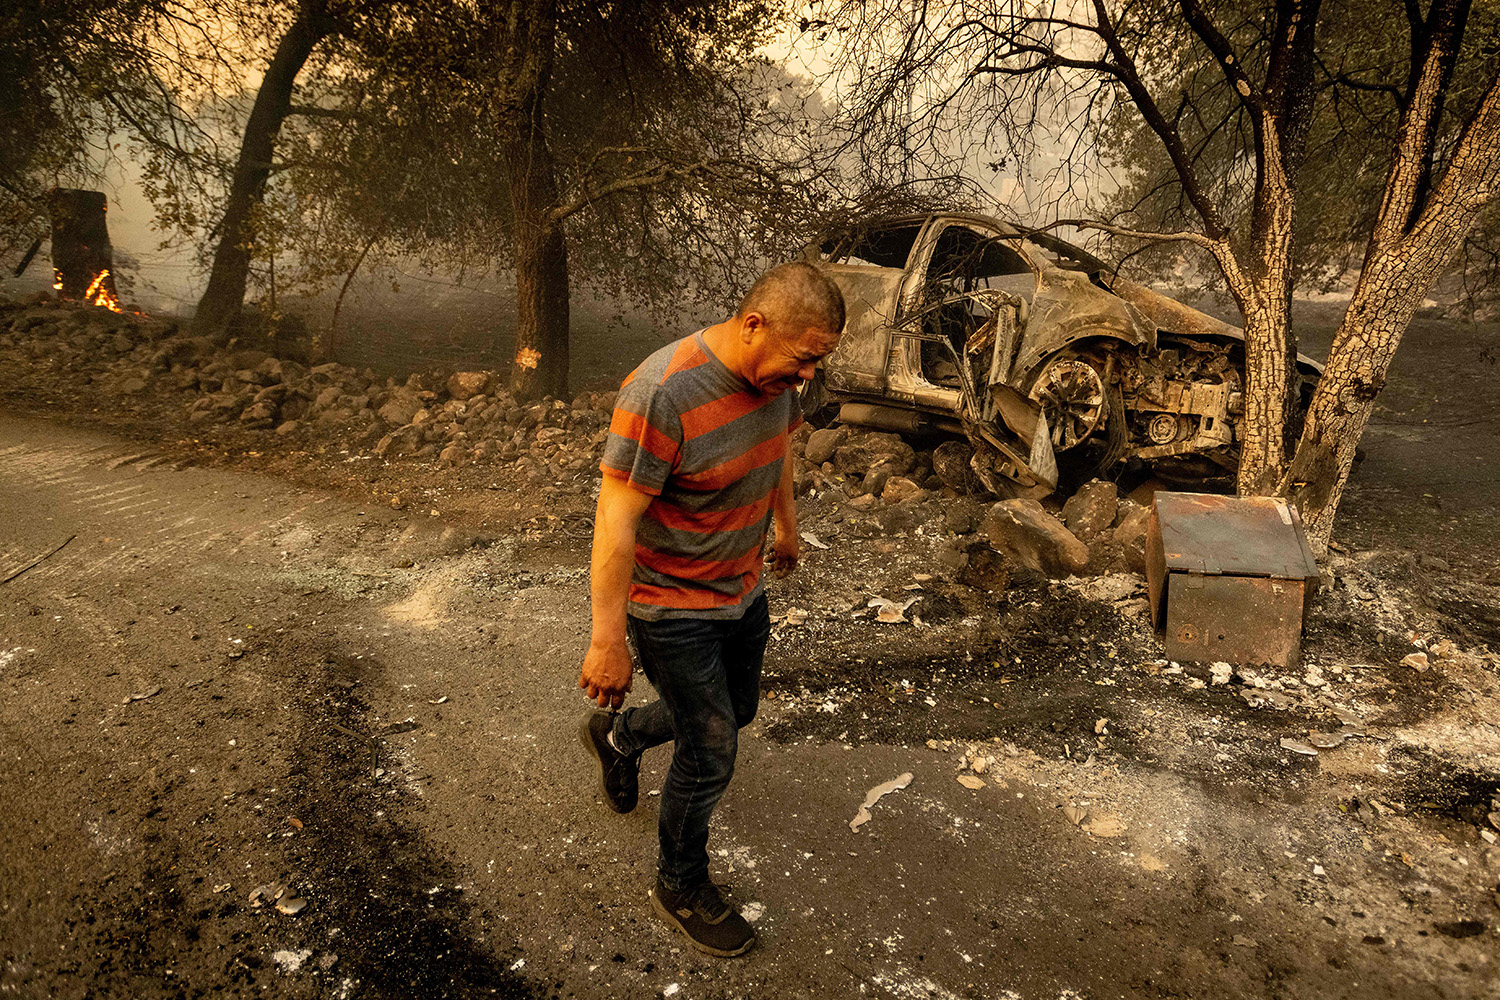 Resident Osvaldo Ramirez walks away from his burned vehicle during the Glass Fire in St. Helena, California, on Sept. 27. Ramirez said the $8,000 in cash along with his family's papers located in a safe inside the vehicle were burned. JOSH EDELSON/AFP via Getty Images